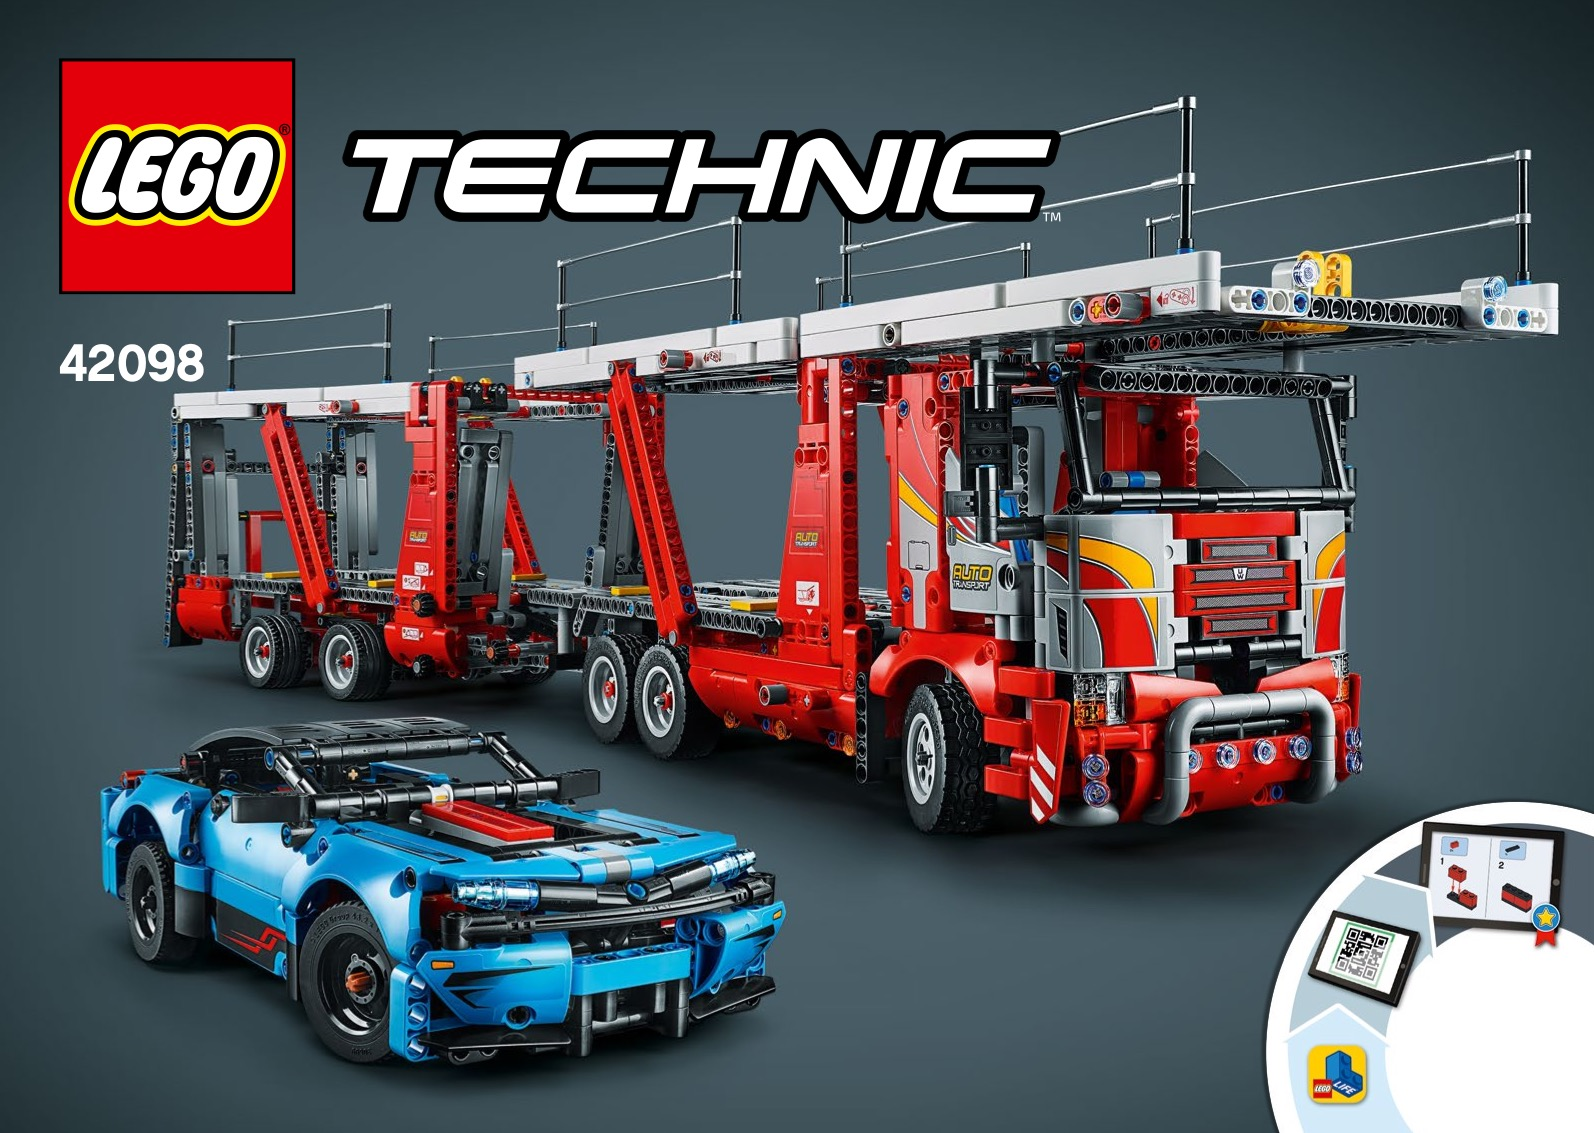 Review 42098 1 Car Transporter Rebrickable Build With Lego